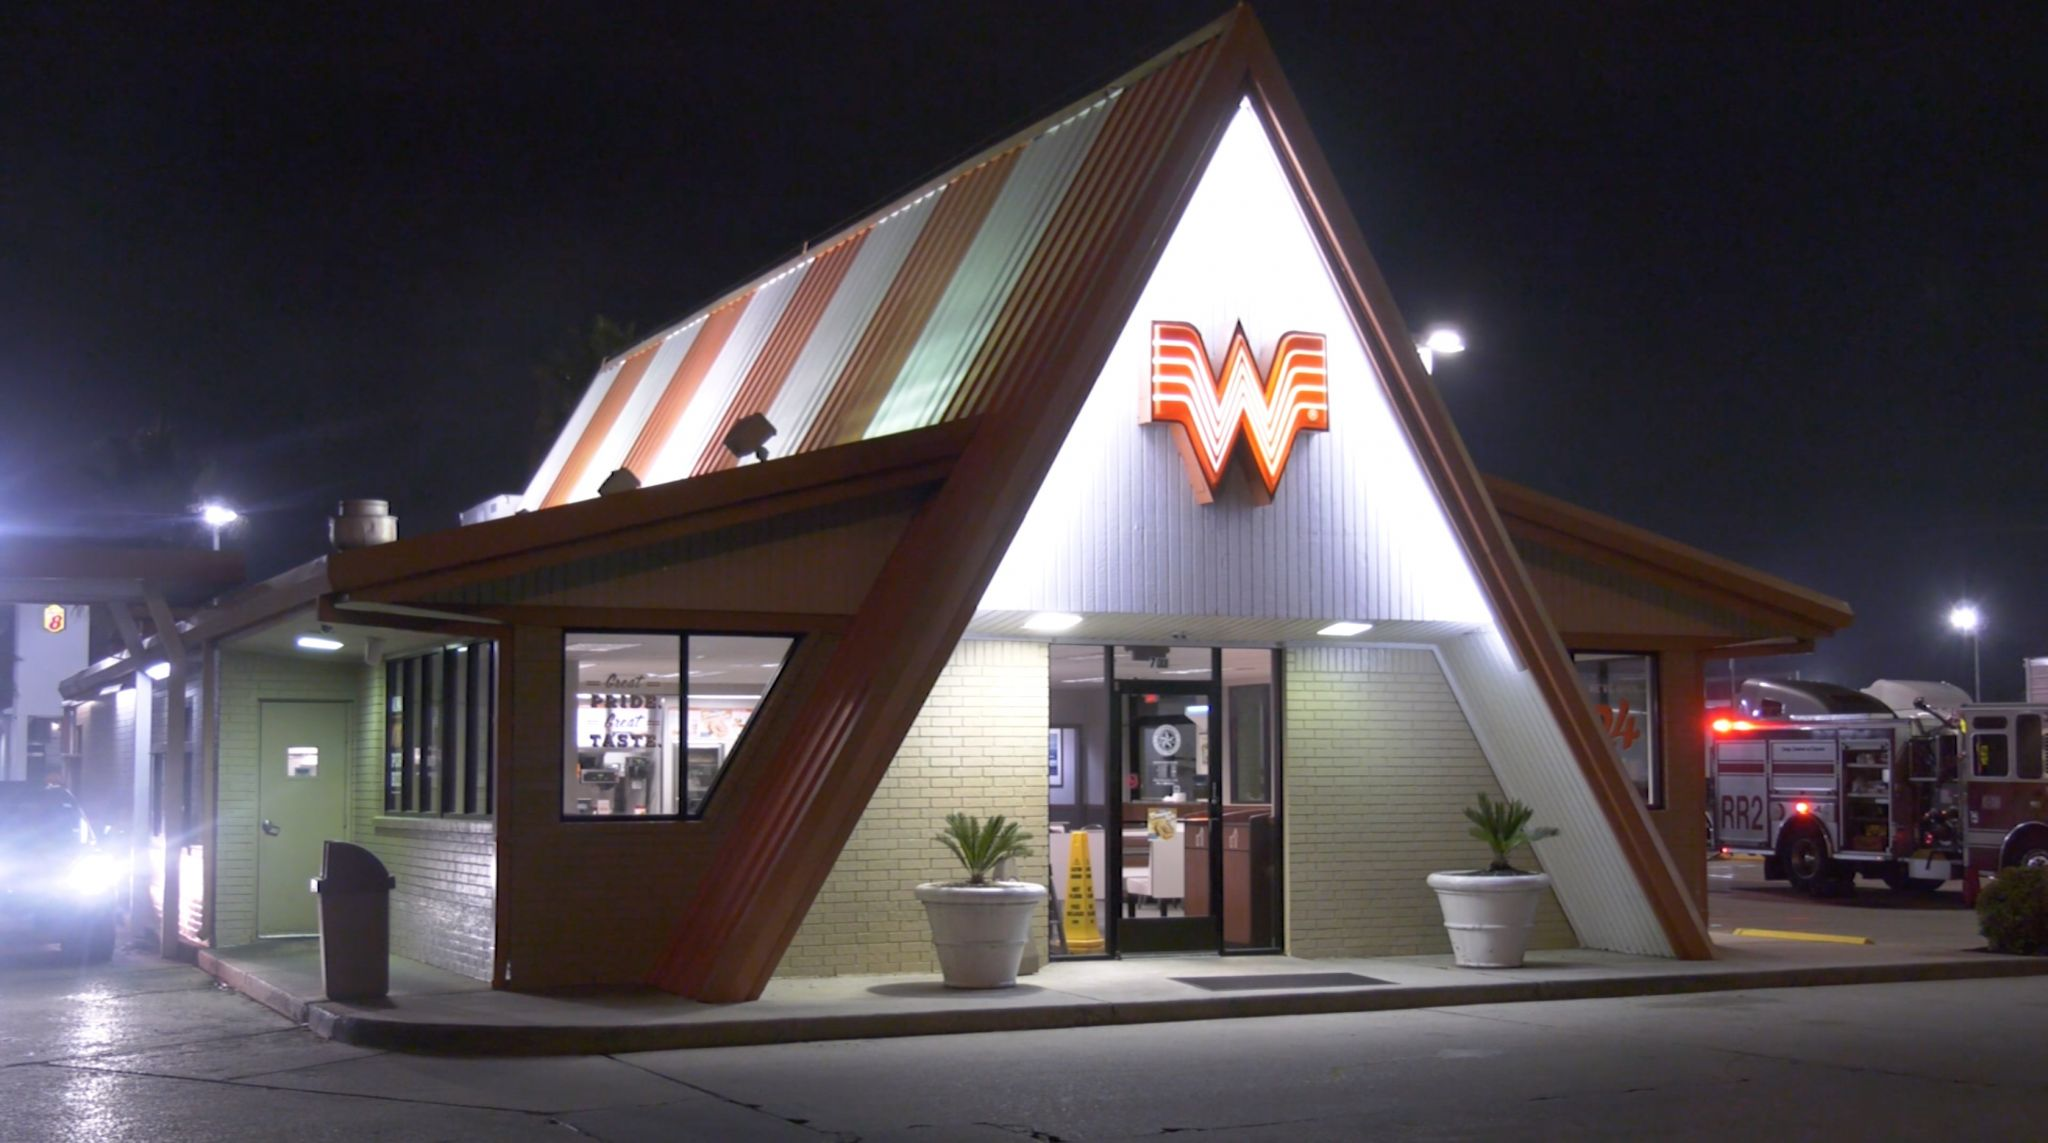 Houston man walks himself to Whataburger after being shot, police say